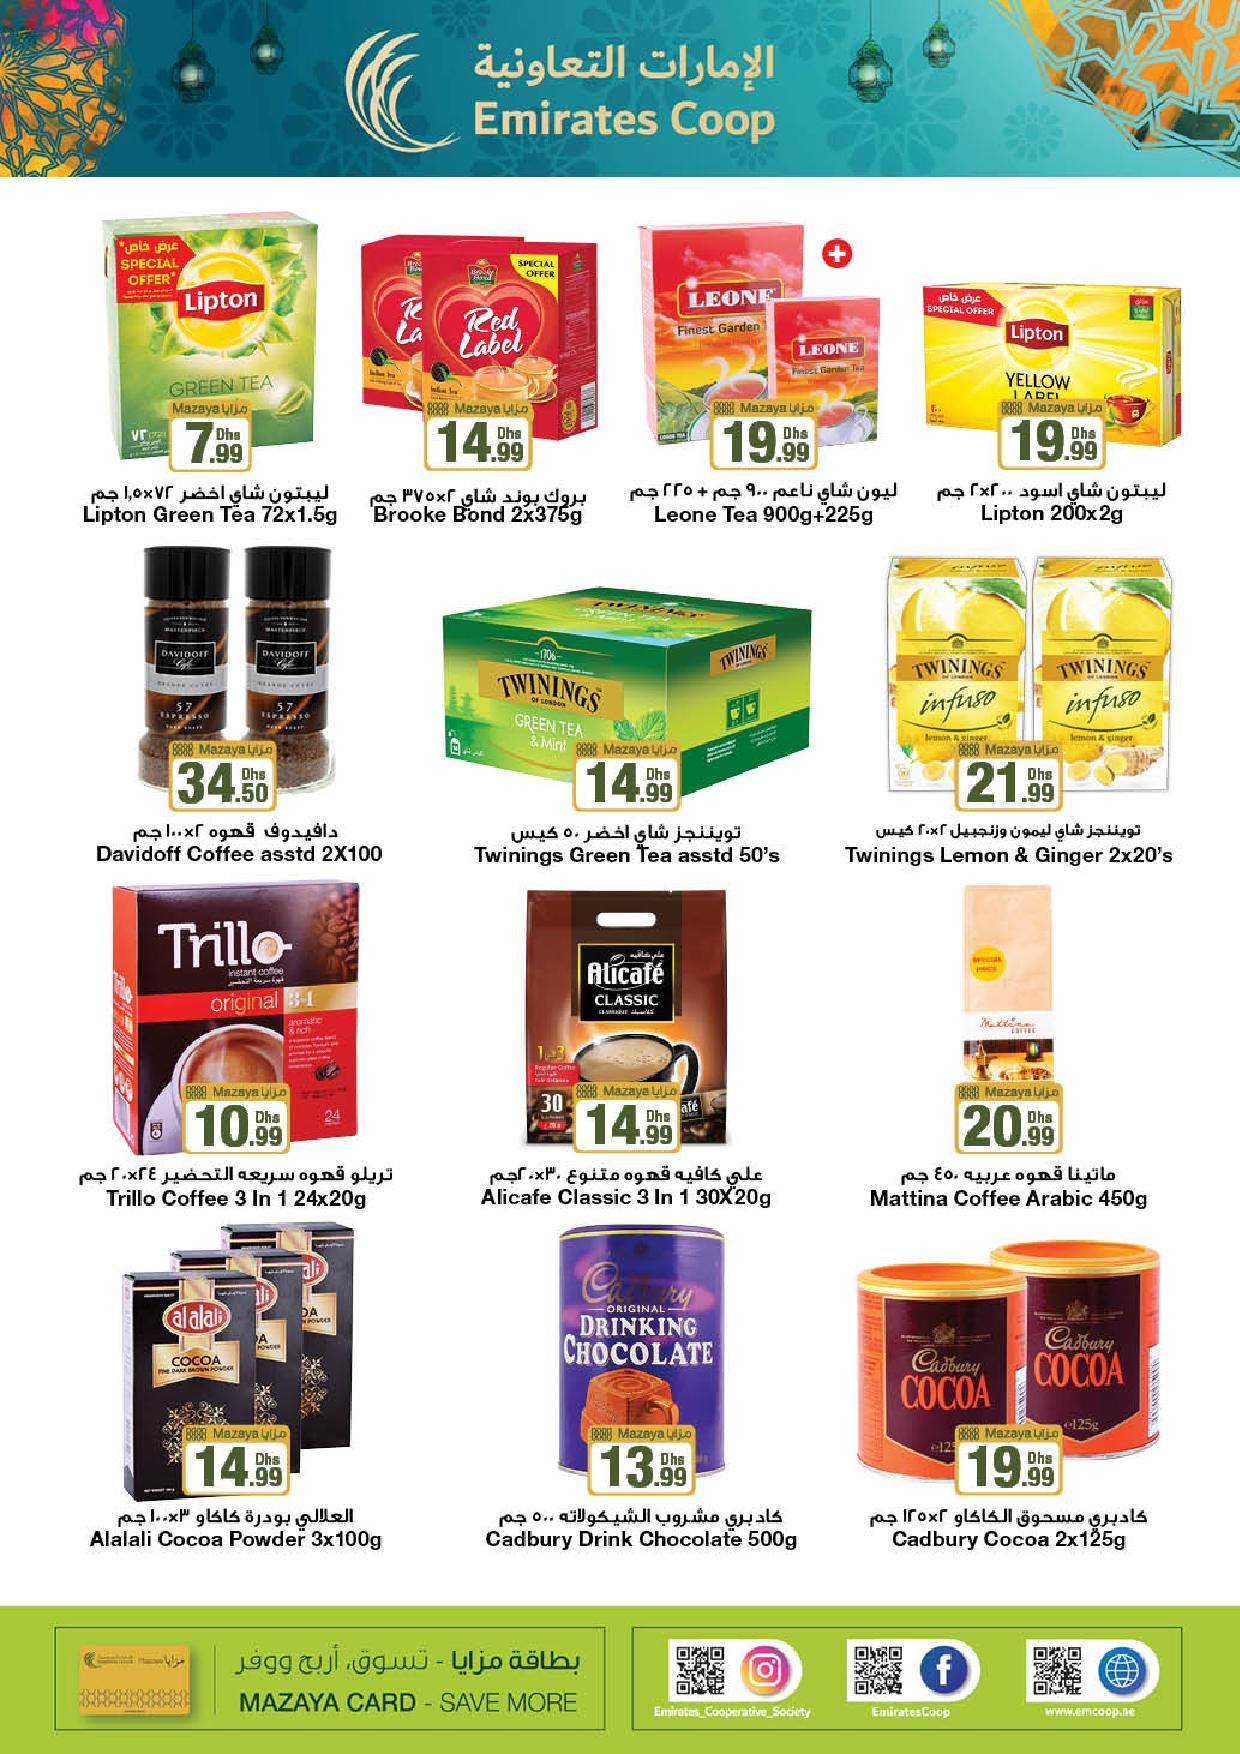 Grab Your Deals Its Ending Ramadan Kareem Promotion Emirates Co Operative Society Http Emcoop Ae Touch Ecsslide Slid Twinings Red Label Brooke Bond